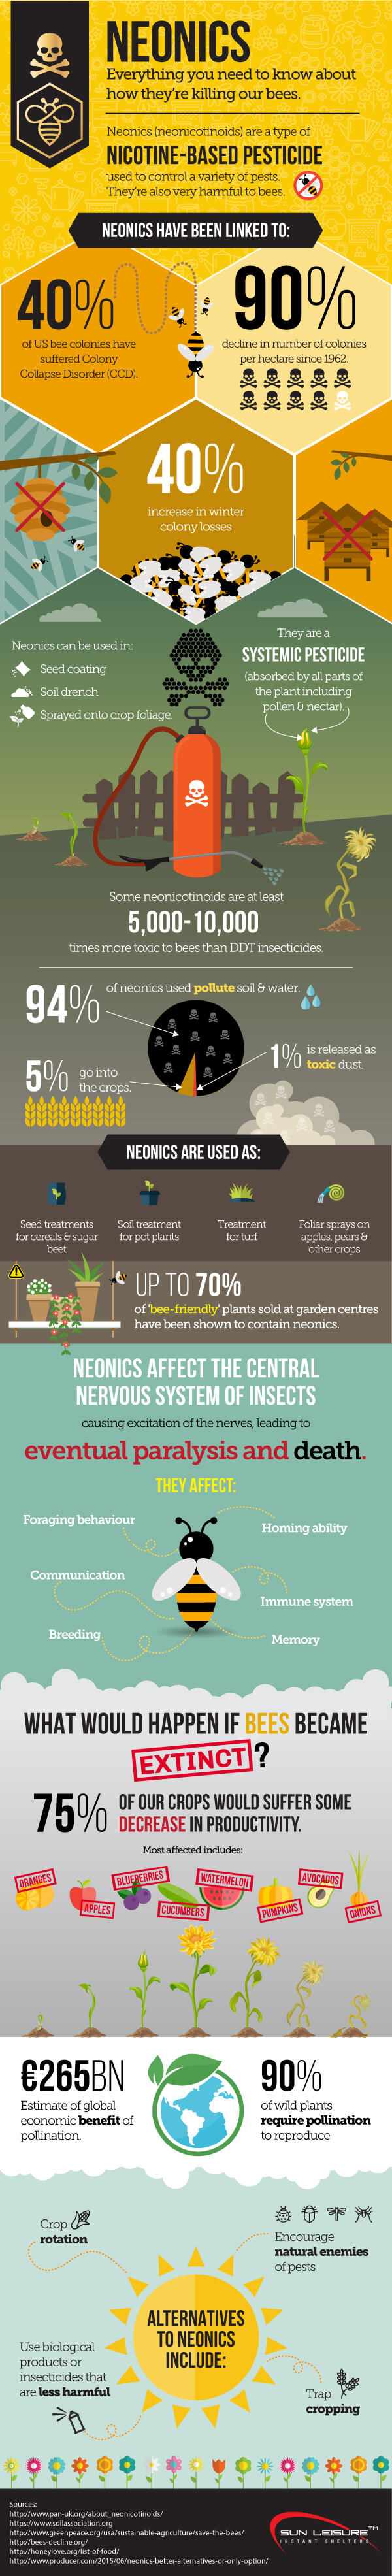 Neonics - How They're Killing Our Bees